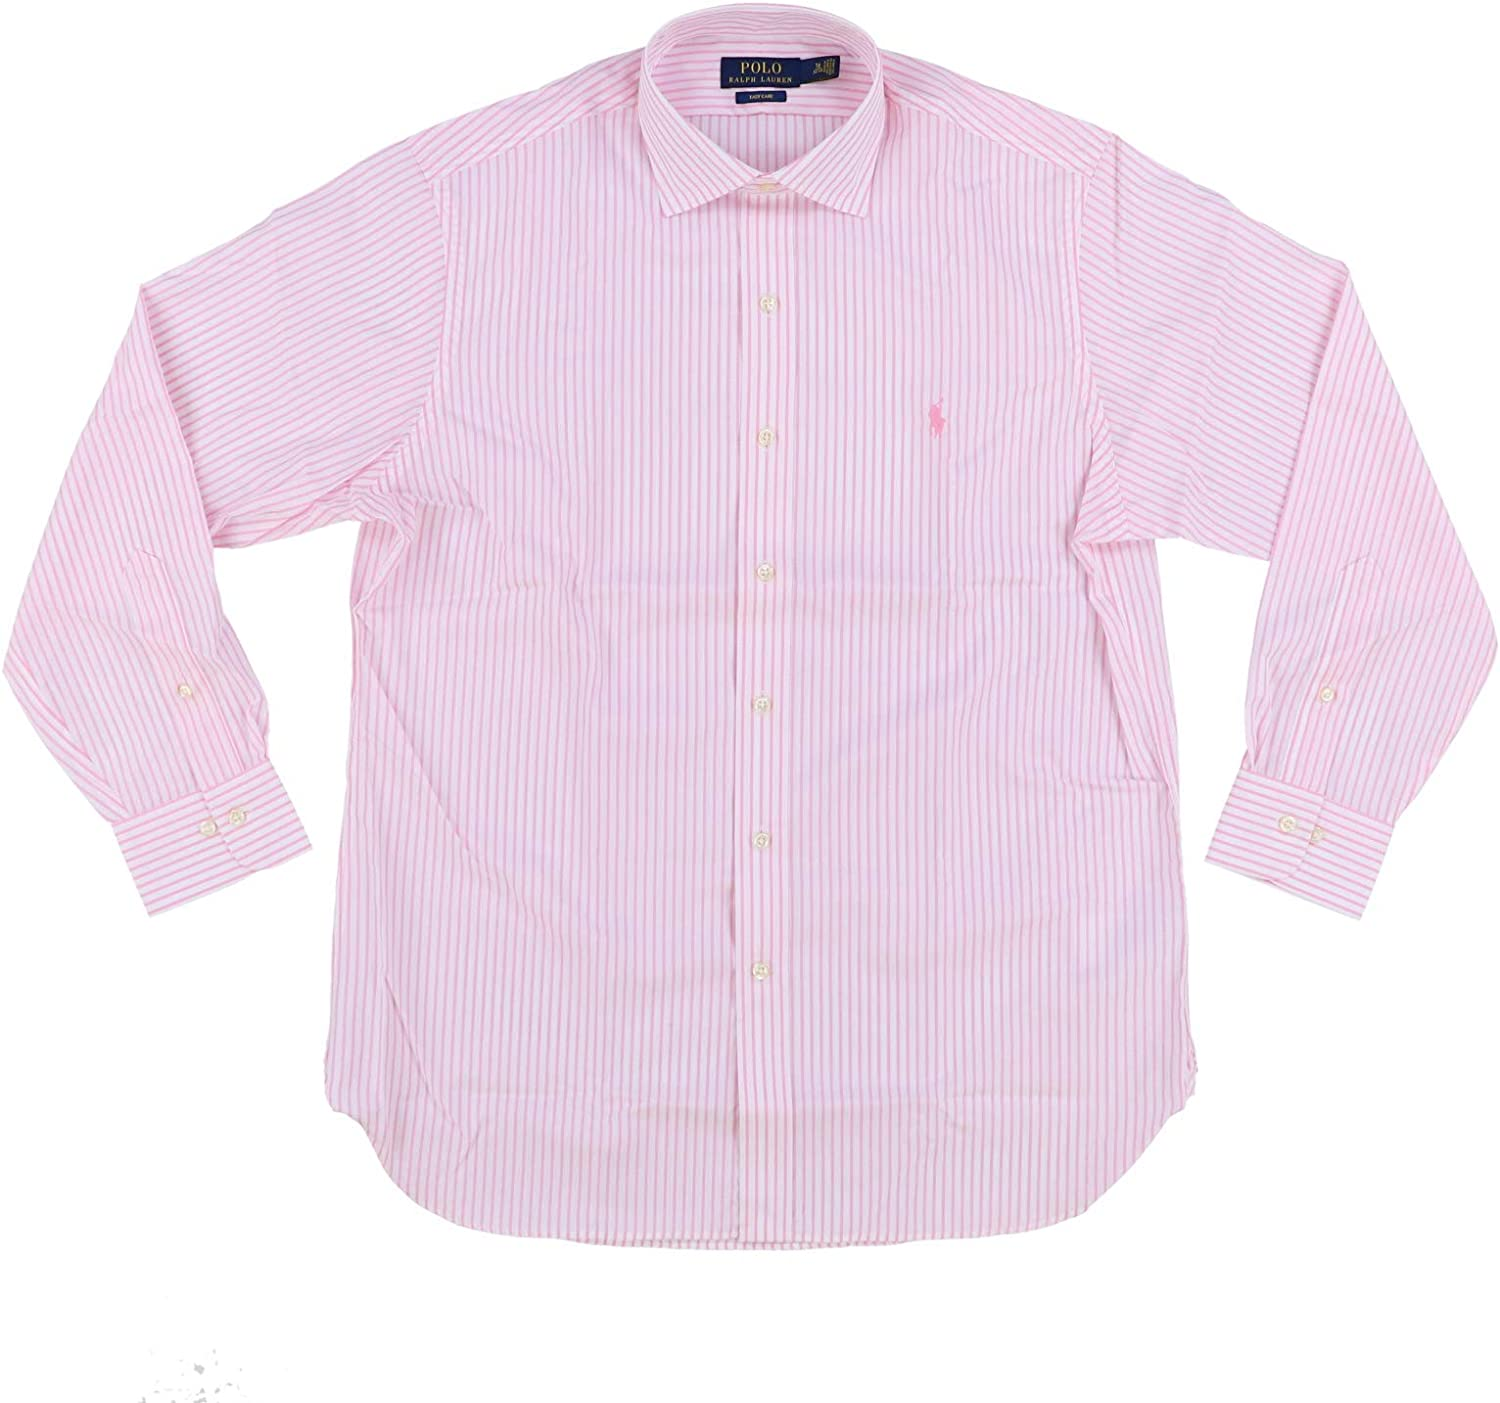 Polo Ralph Lauren Mens Easy Care Dress Shirt